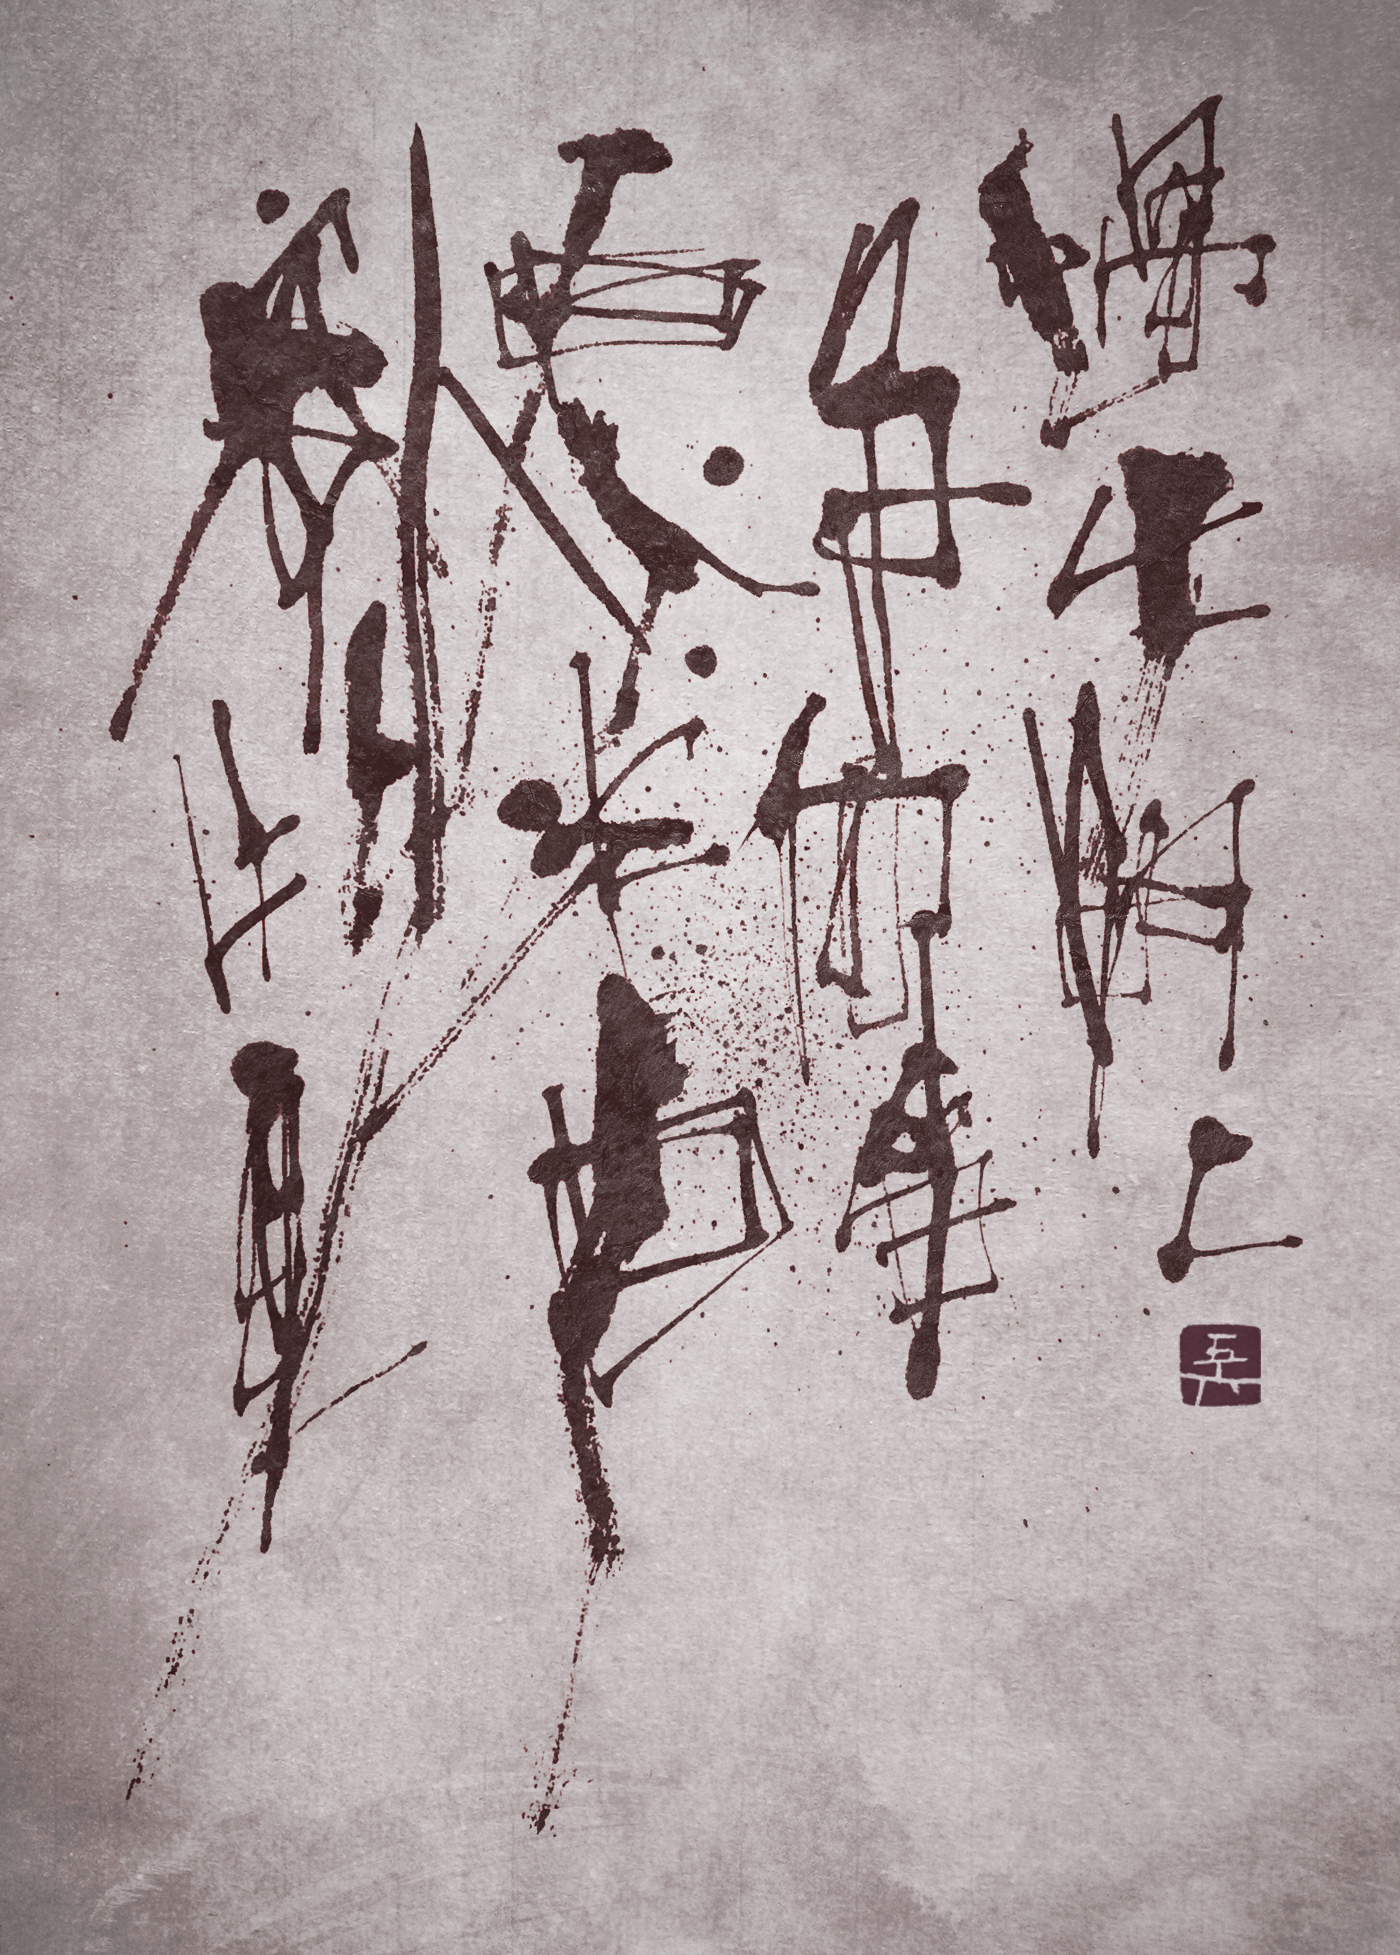 白楽天 白居易 対酒 bai juyi poems 書道作品 japaneseart japanesecalligraphy